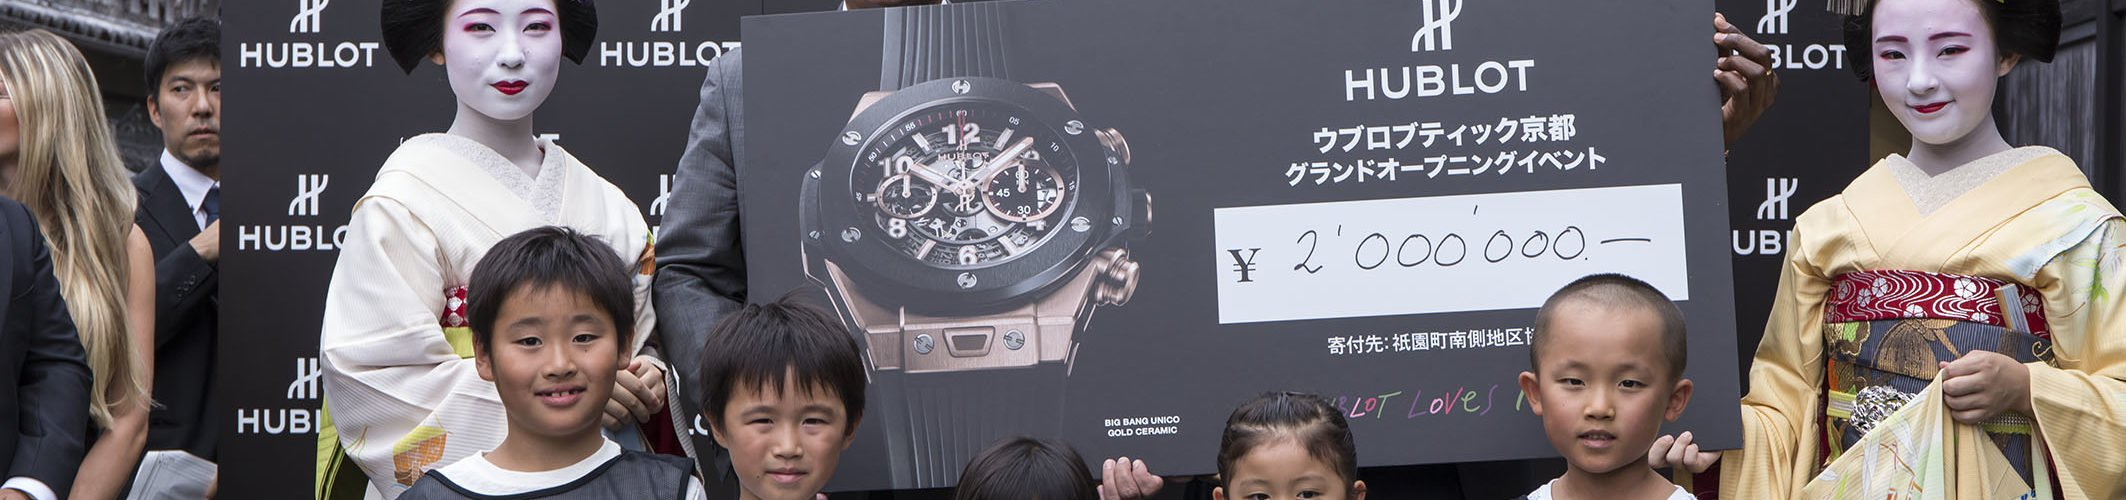 Usain-Bolt-Hublot-Spende-Japan